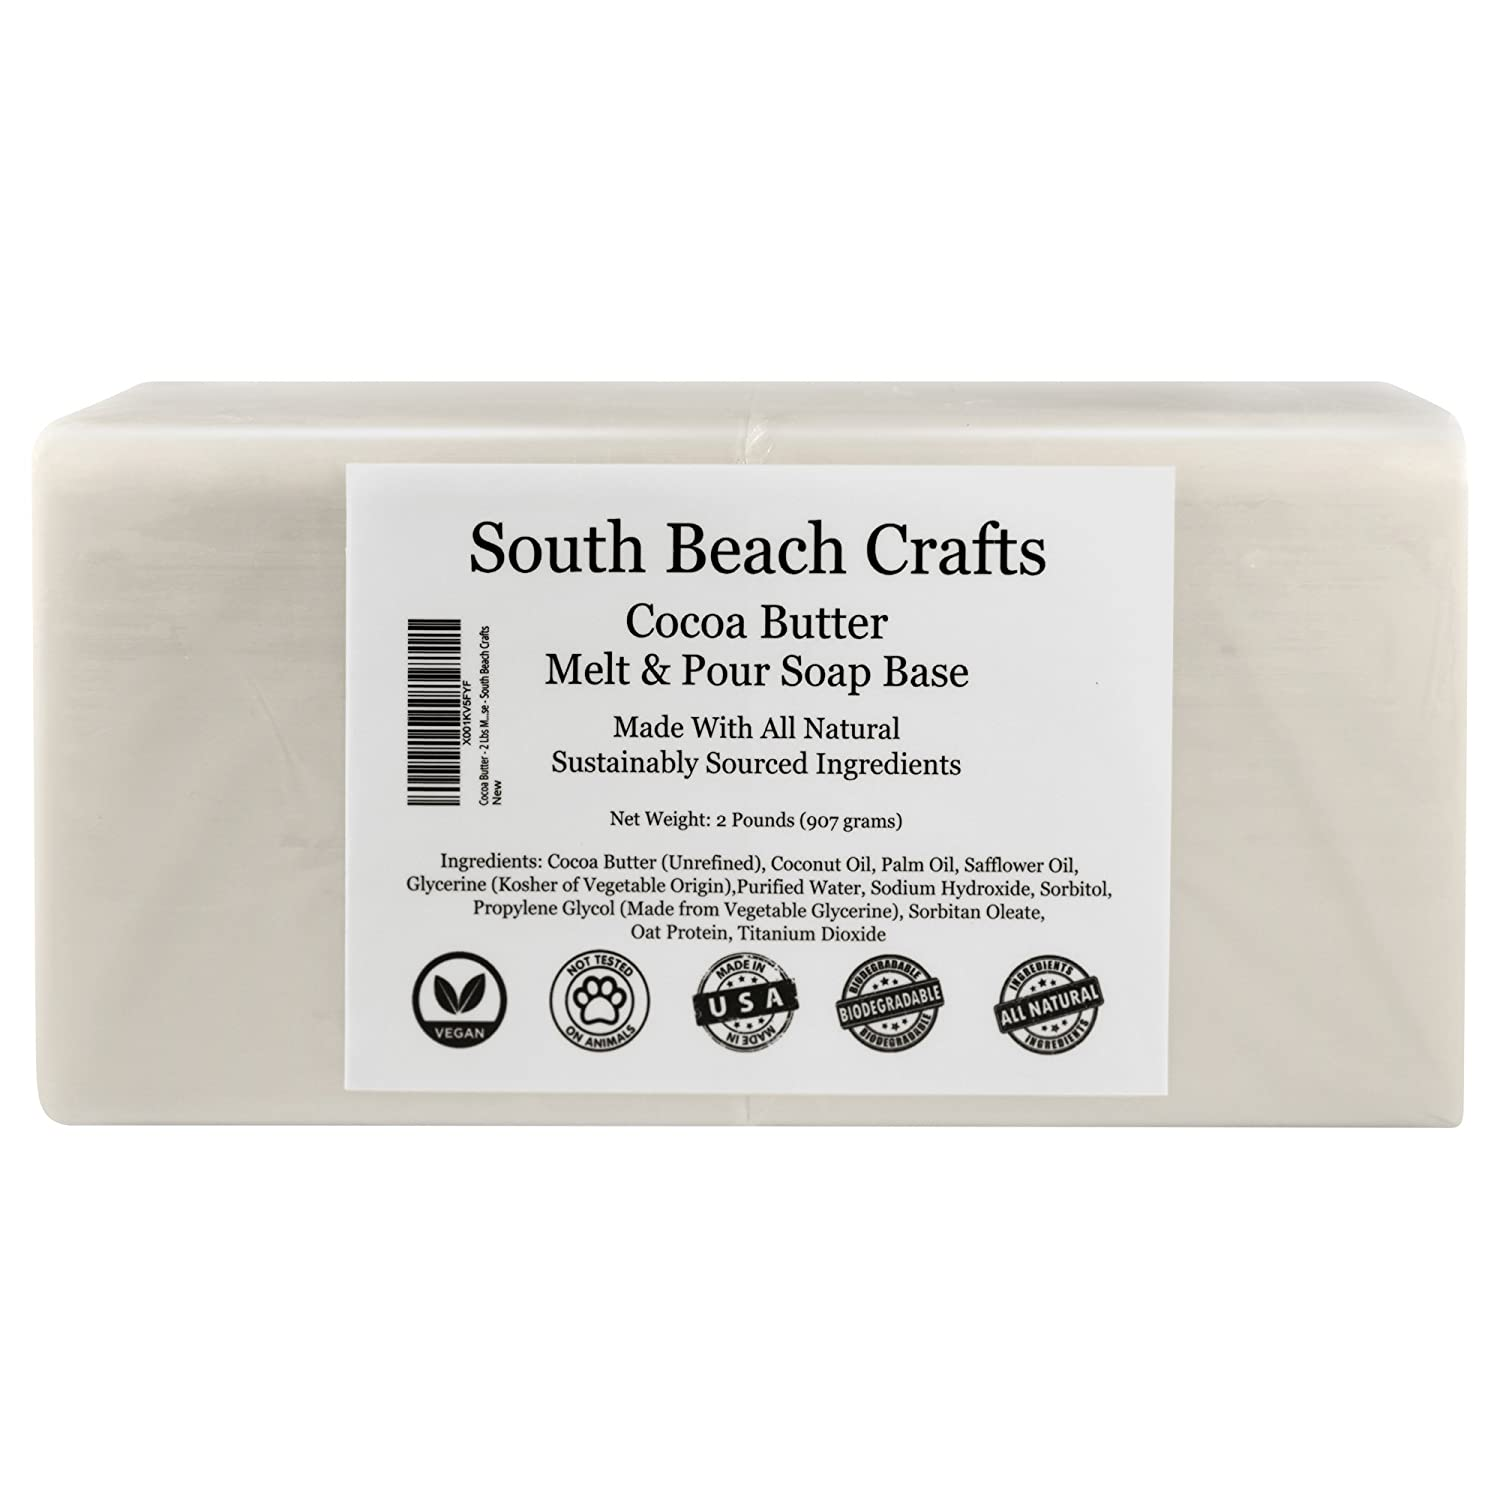 Cocoa Butter - 2 Lbs Melt and Pour Soap Base - South Beach Crafts SOBE-107